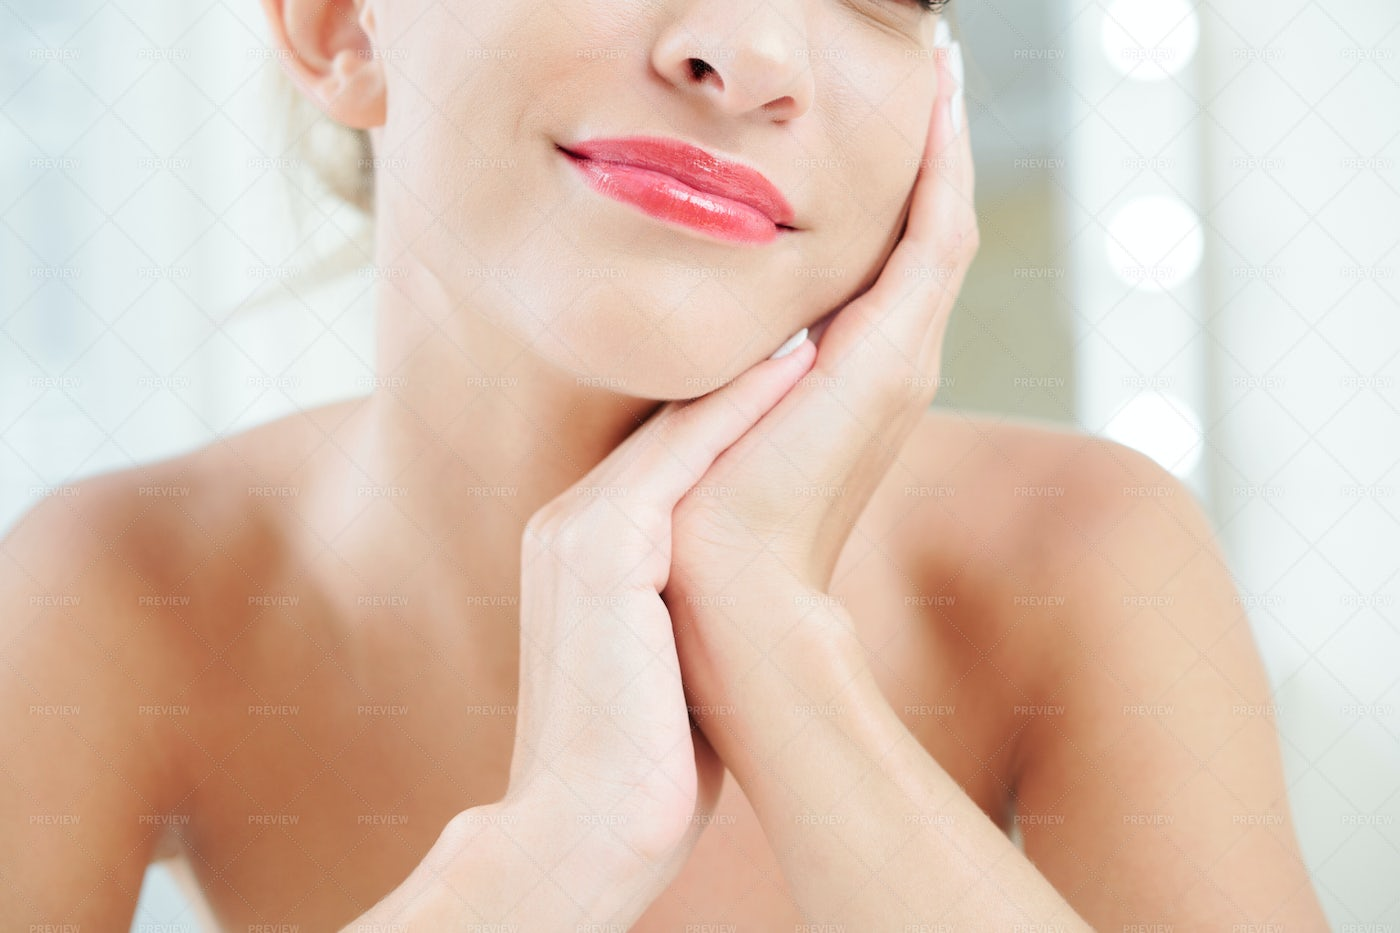 Smiling Woman With Pink Lip Gloss: Stock Photos